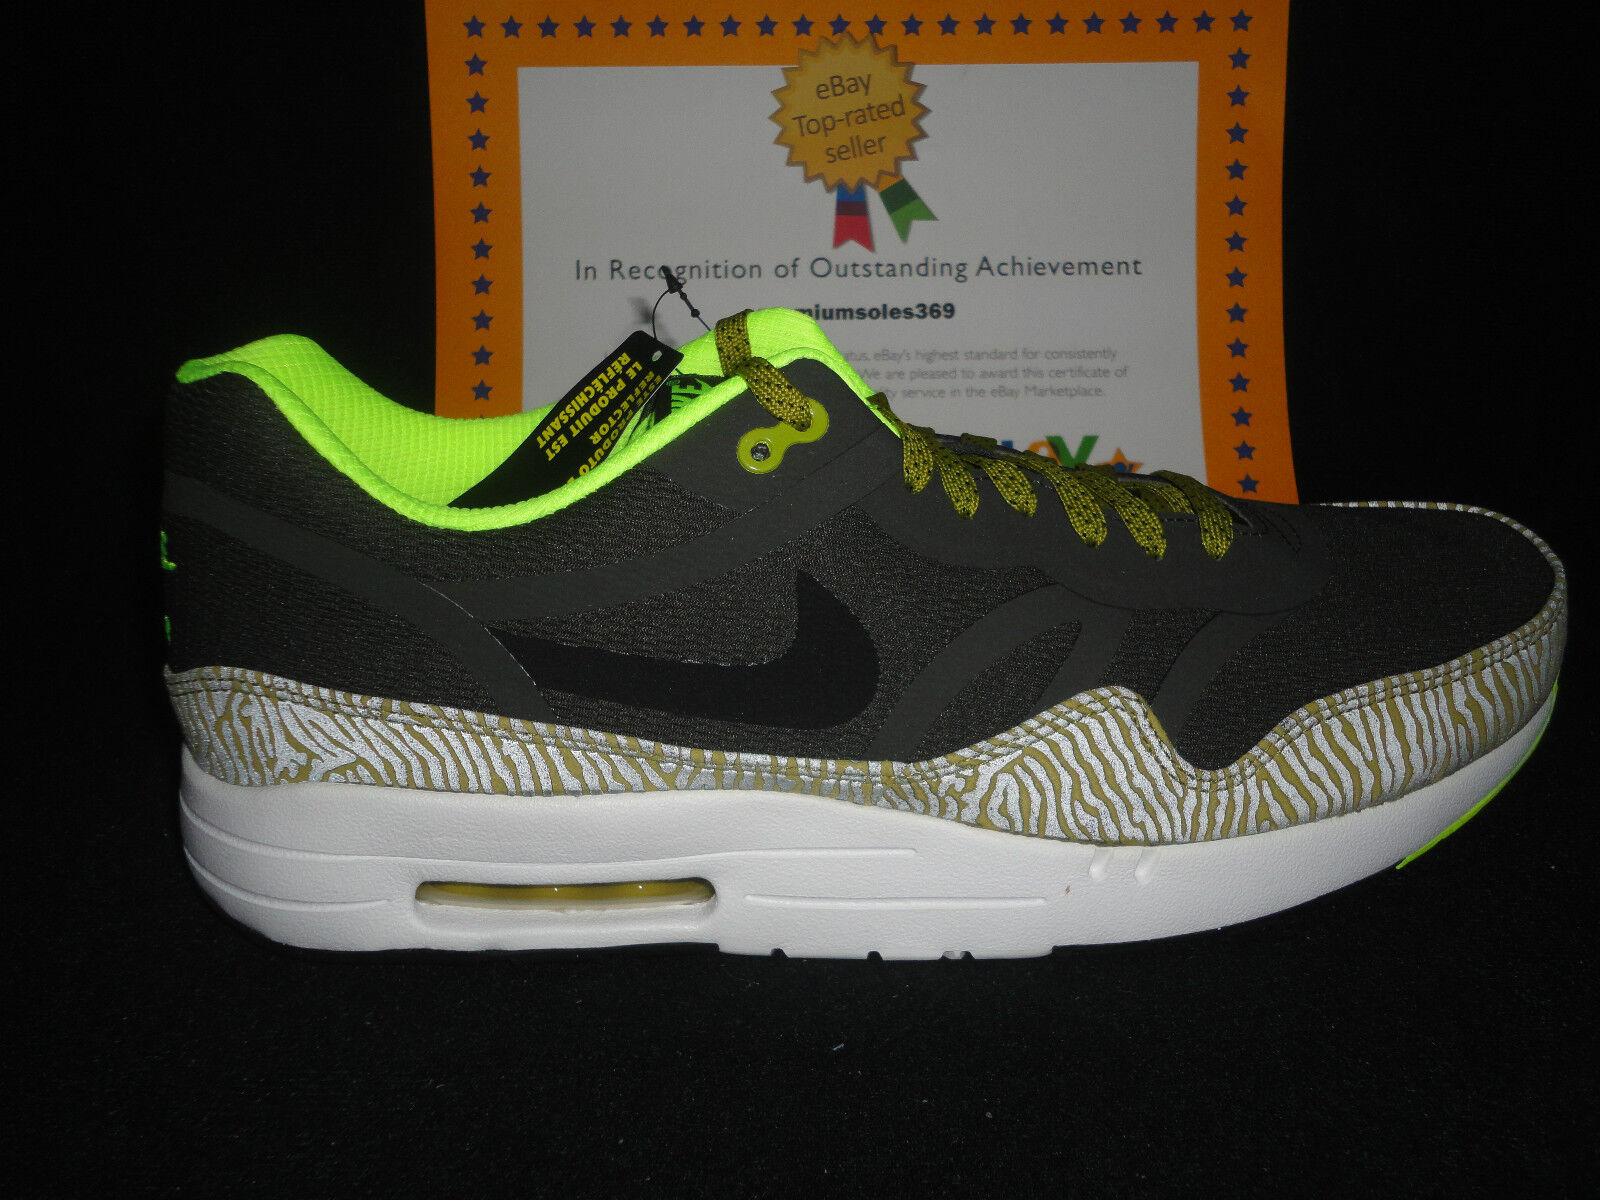 Nike Air Max 1 Premium Tape, Reflective Glow, Sz 12 Wild casual shoes